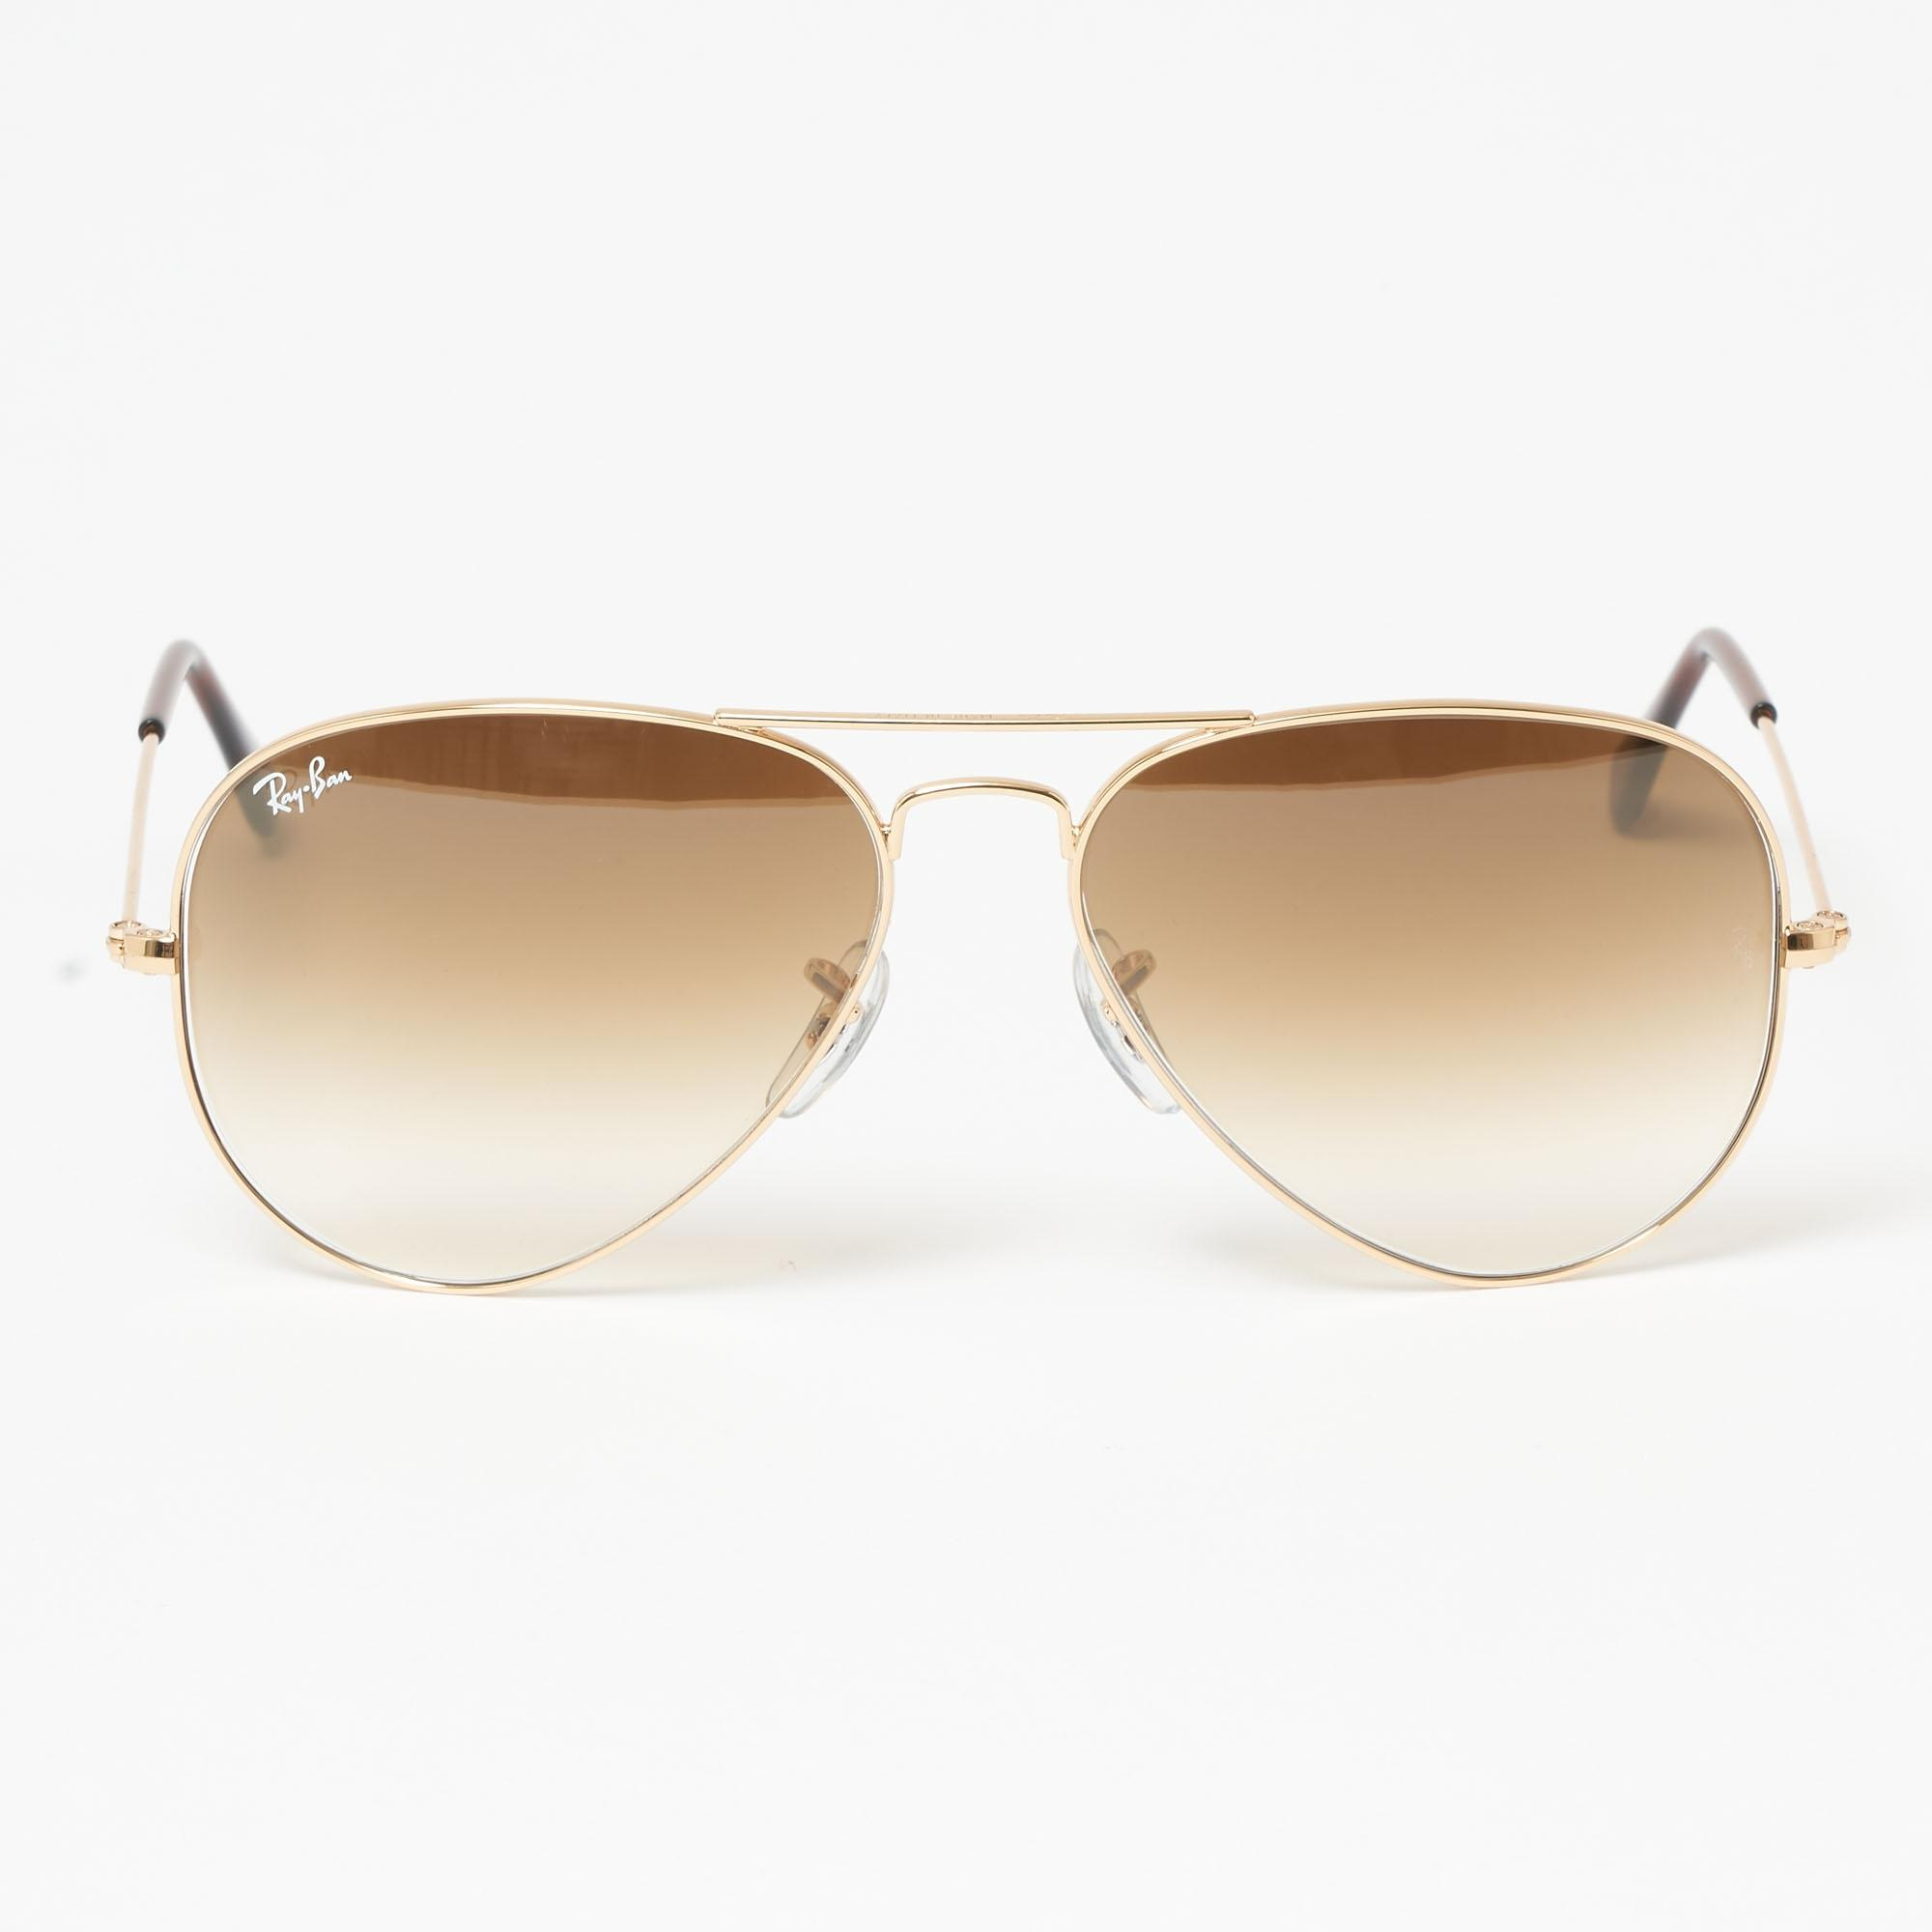 dc6e0e47112 ... good ray ban aviator gradient sunglasses light brown gradient lenses  lyst. view fullscreen b52e4 96468